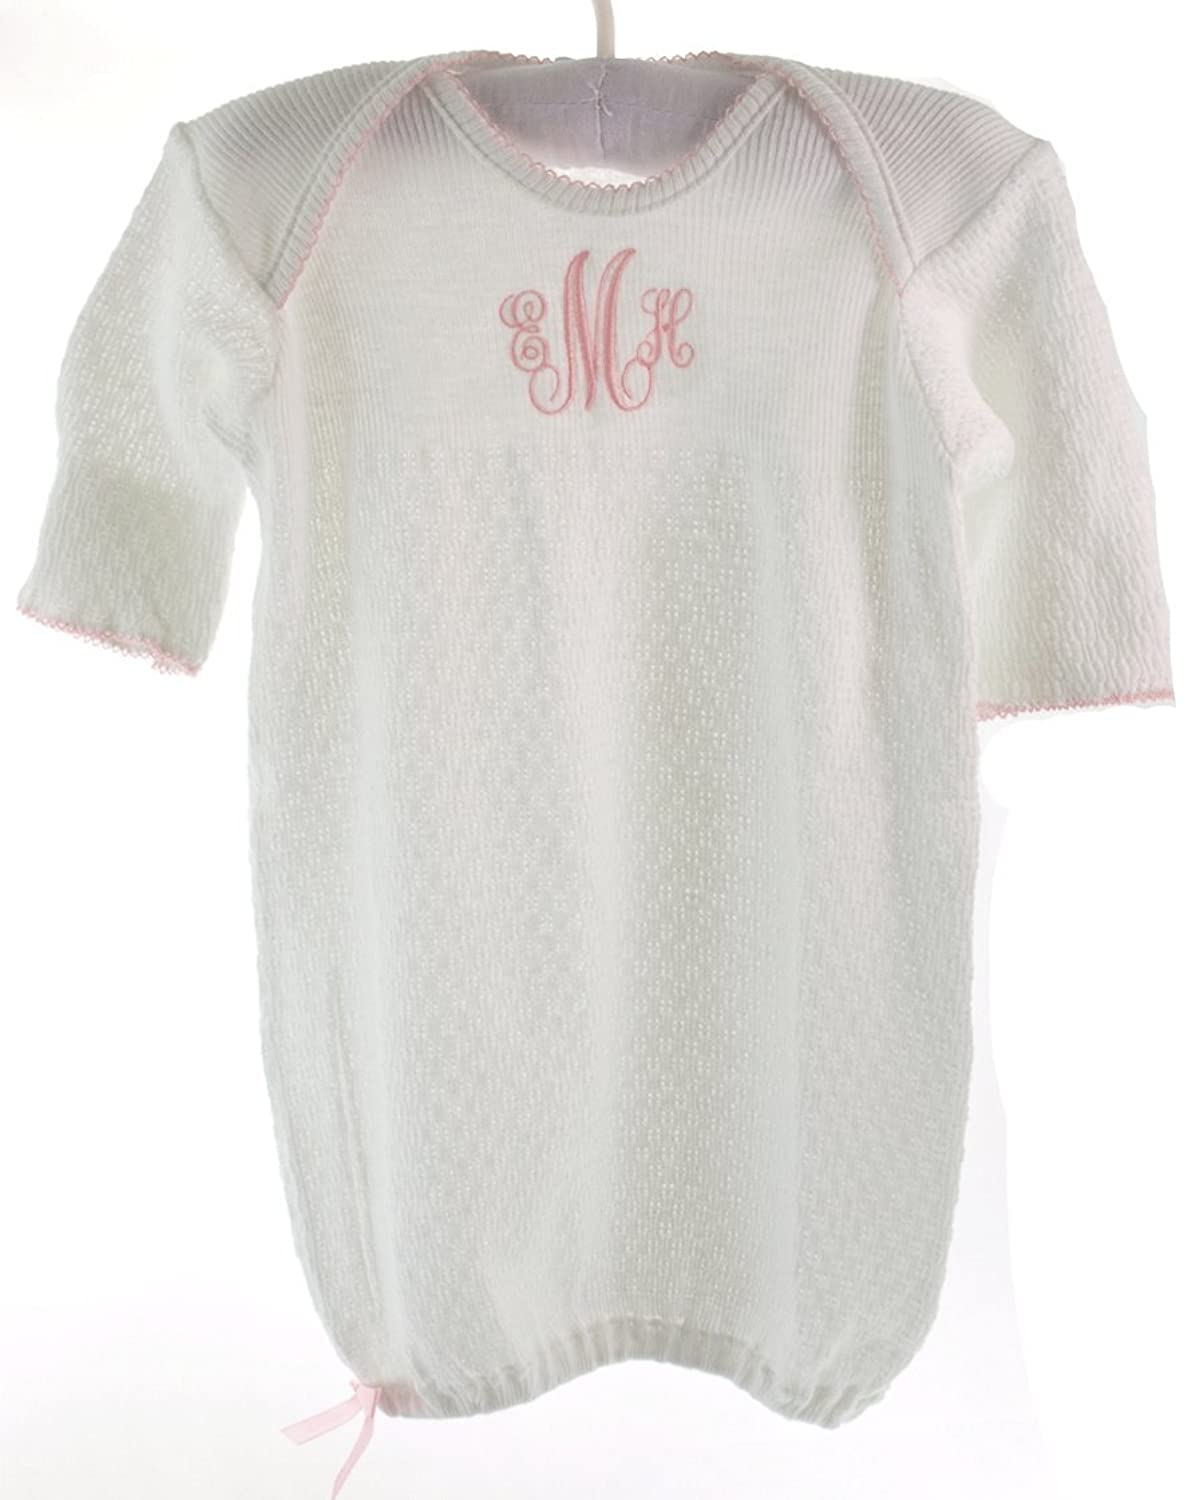 Amazon.com: Paty Inc Infant Baby Boys Take Home Gown White with Blue ...